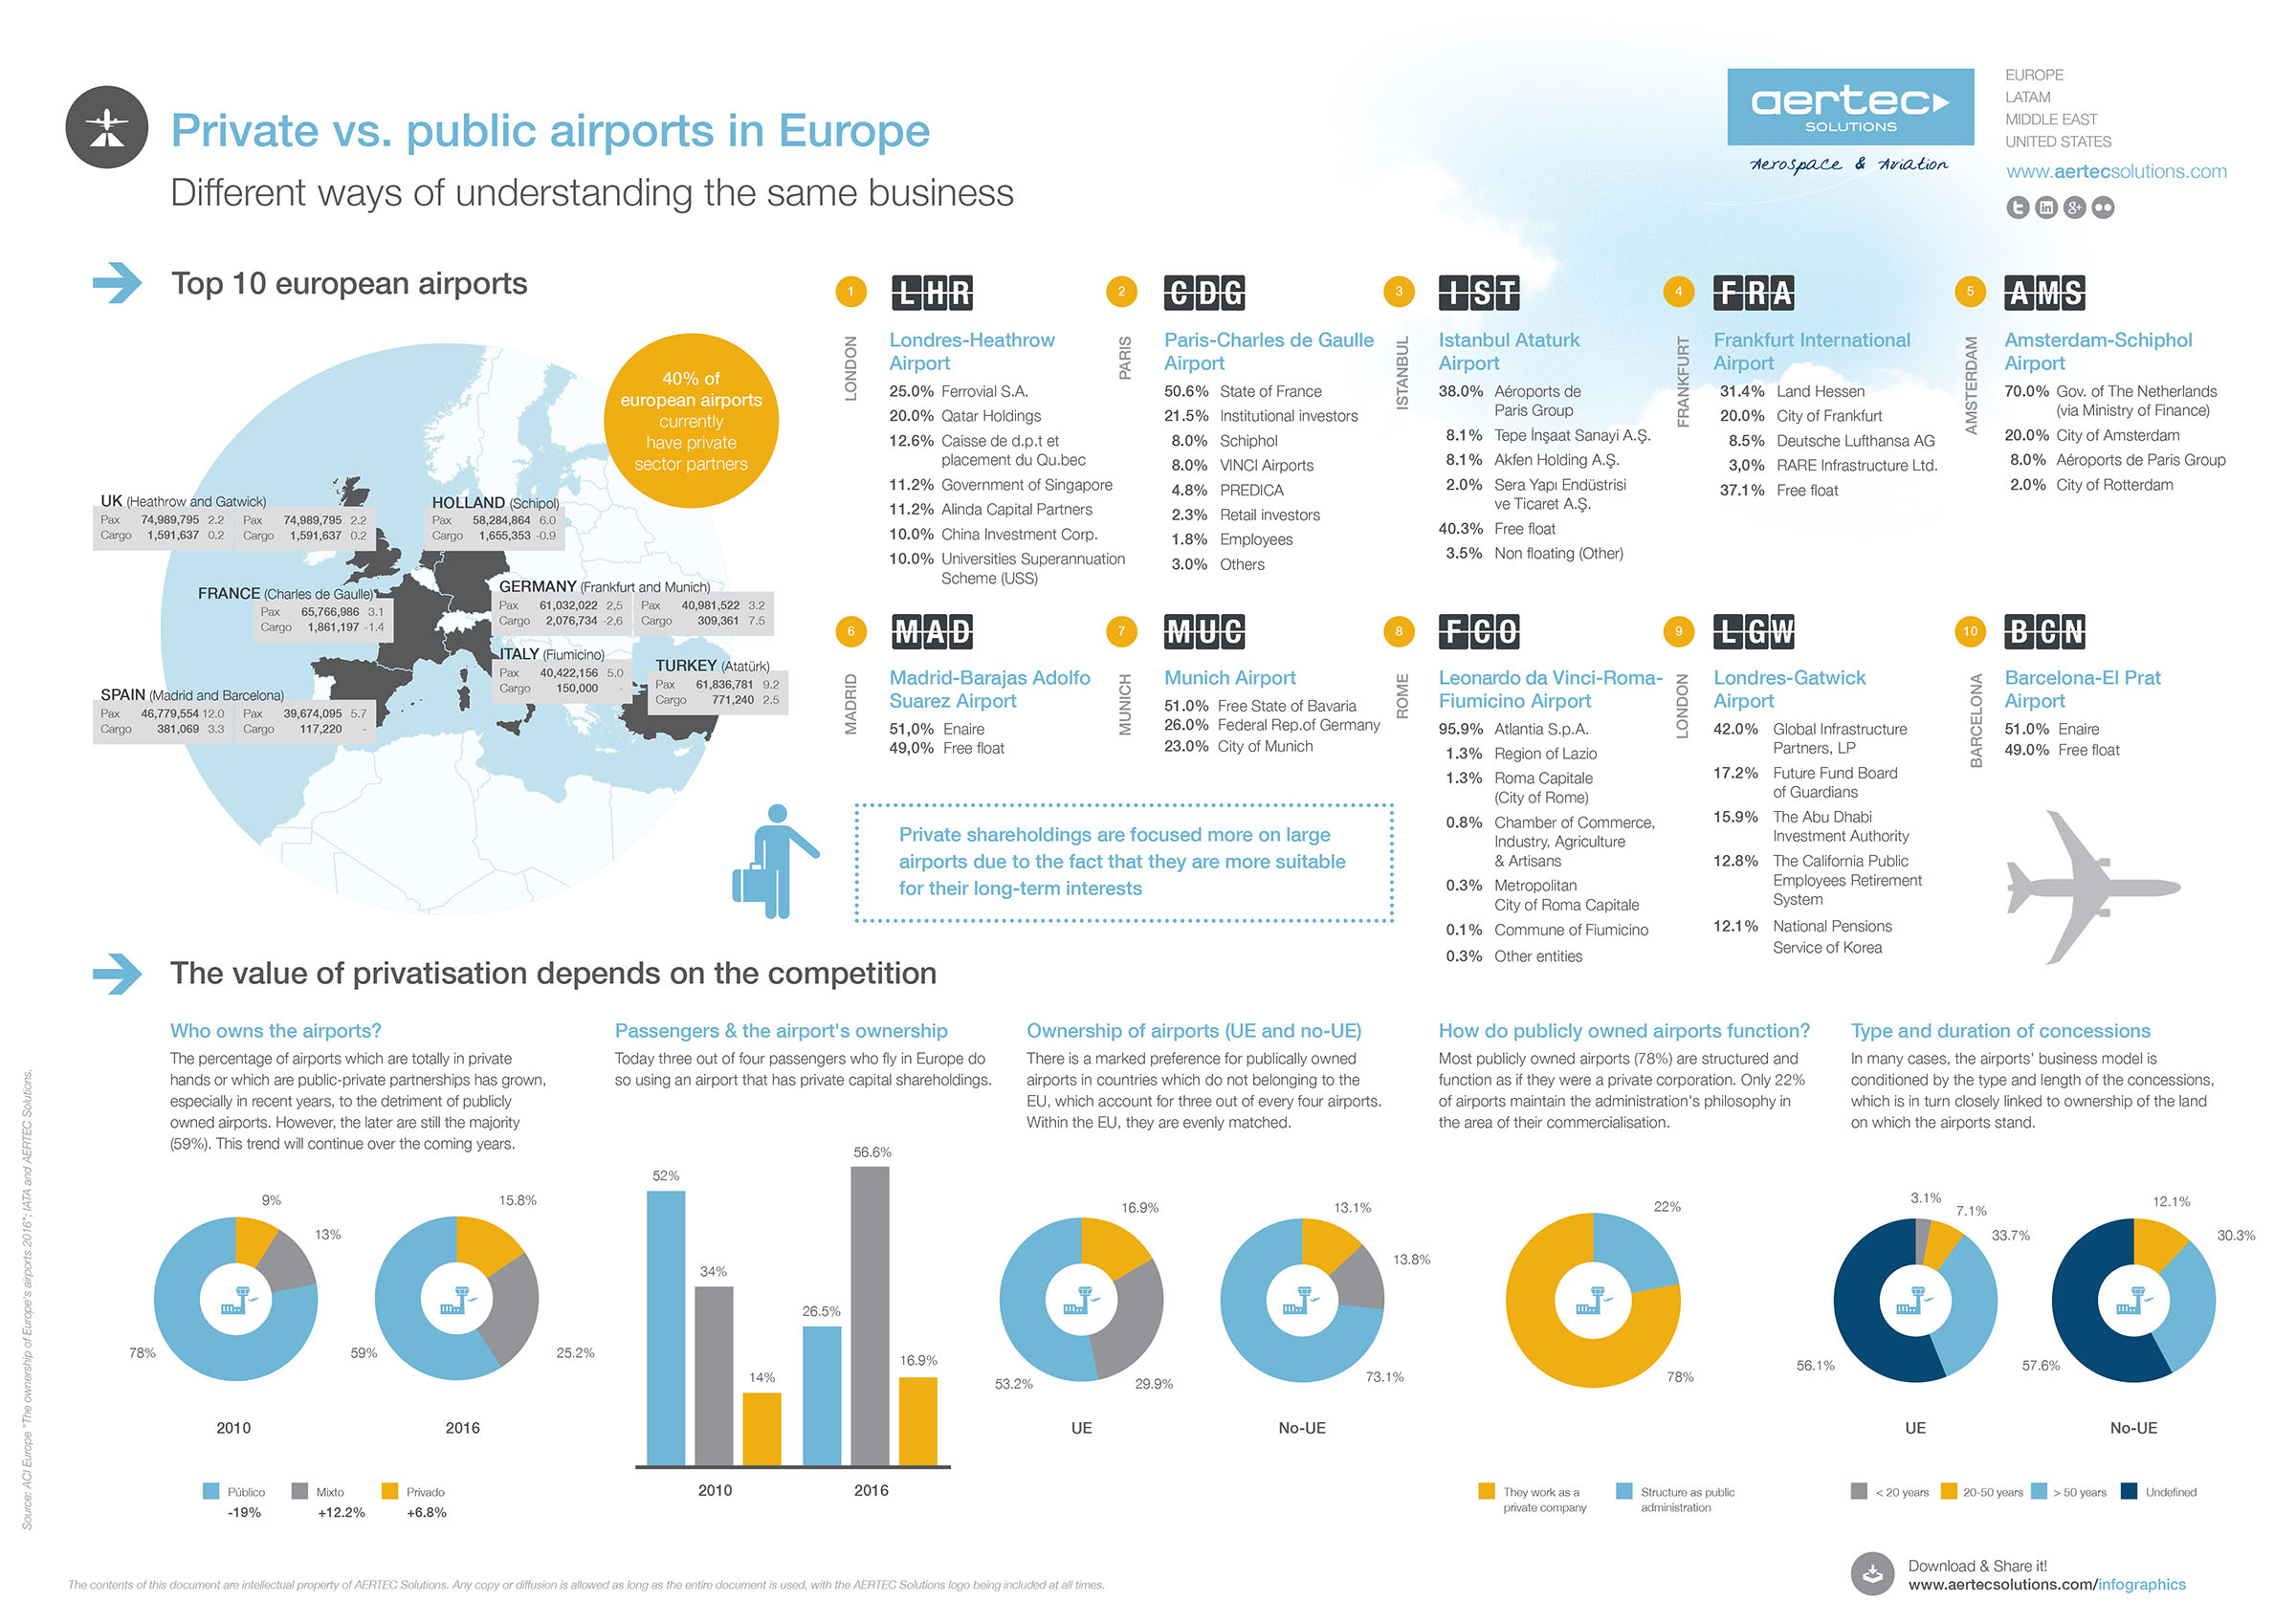 Public and private airports in Europe